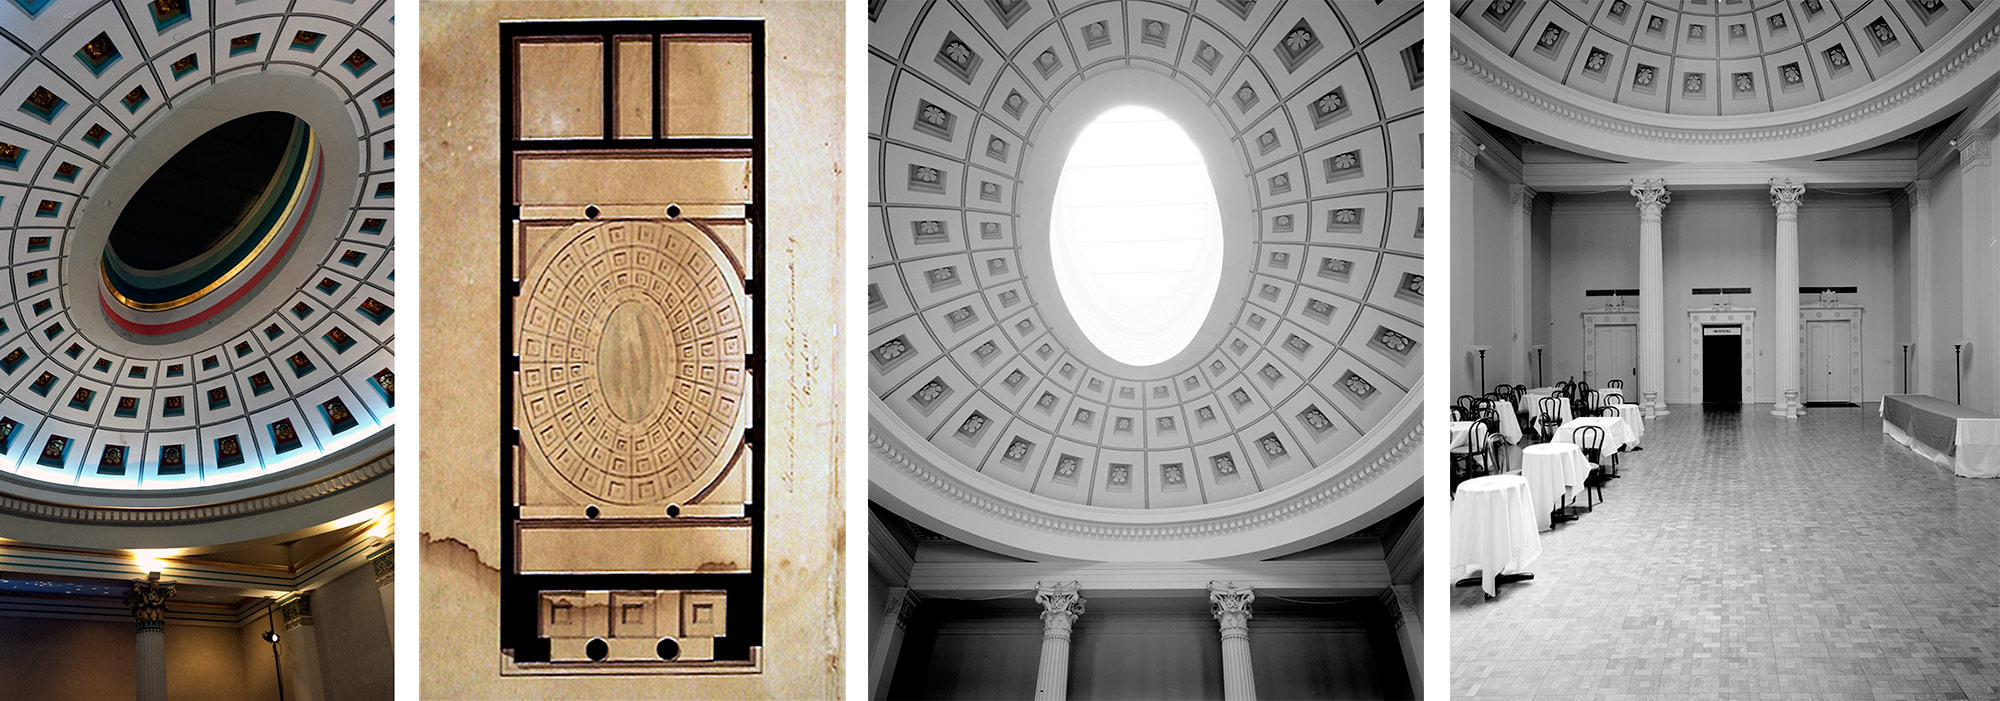 Interior views and ceiling plan. (Courtesy Tipster; New Orleans Public Library; Library of Congress)